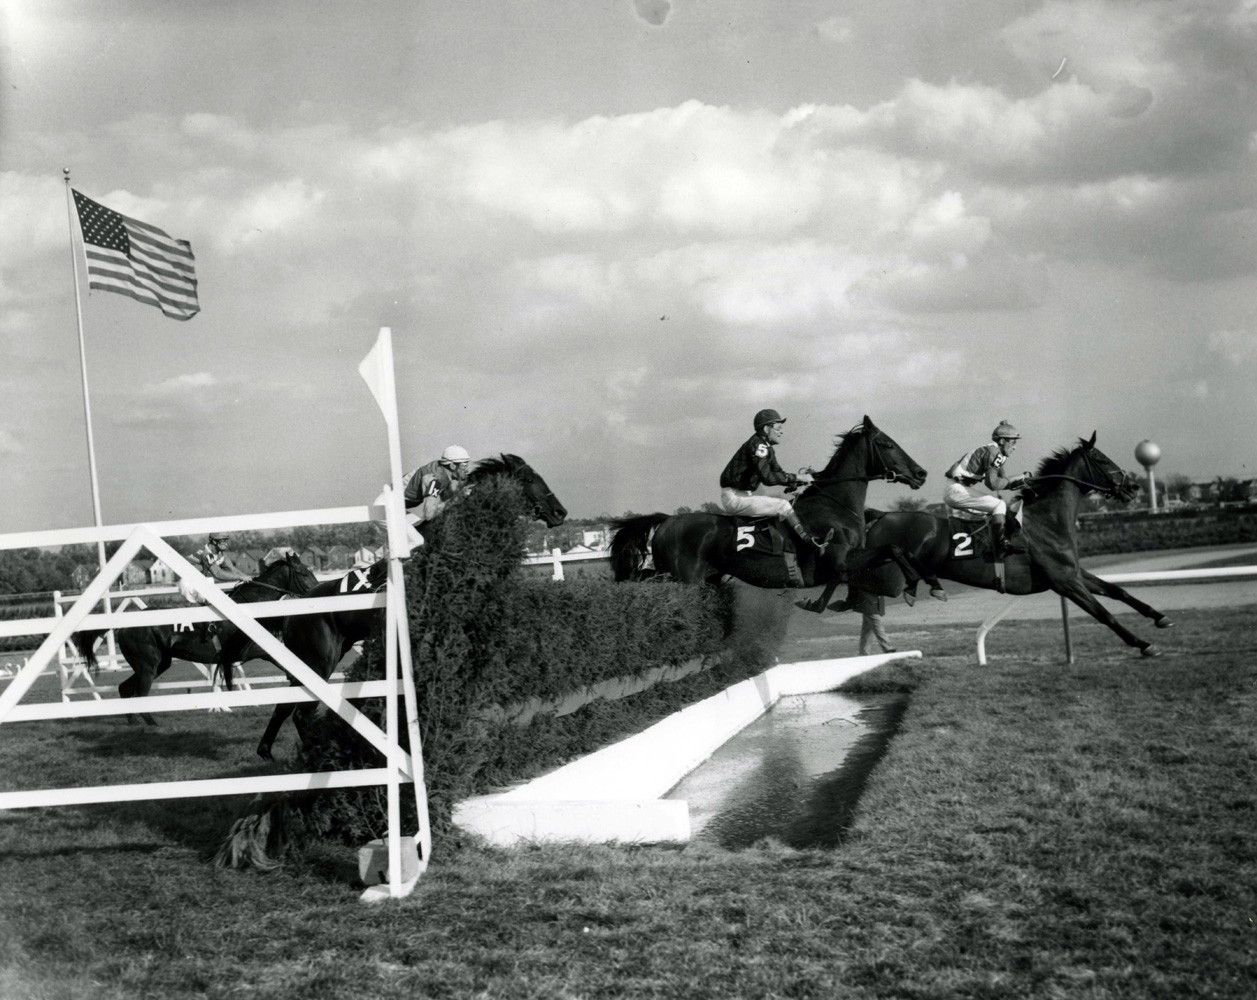 Joe Aitcheson and Peal clear the water obstacle in the 1961 Temple Gwathmey at Aqueduct (Keeneland Library Morgan Collection/Museum Collection)